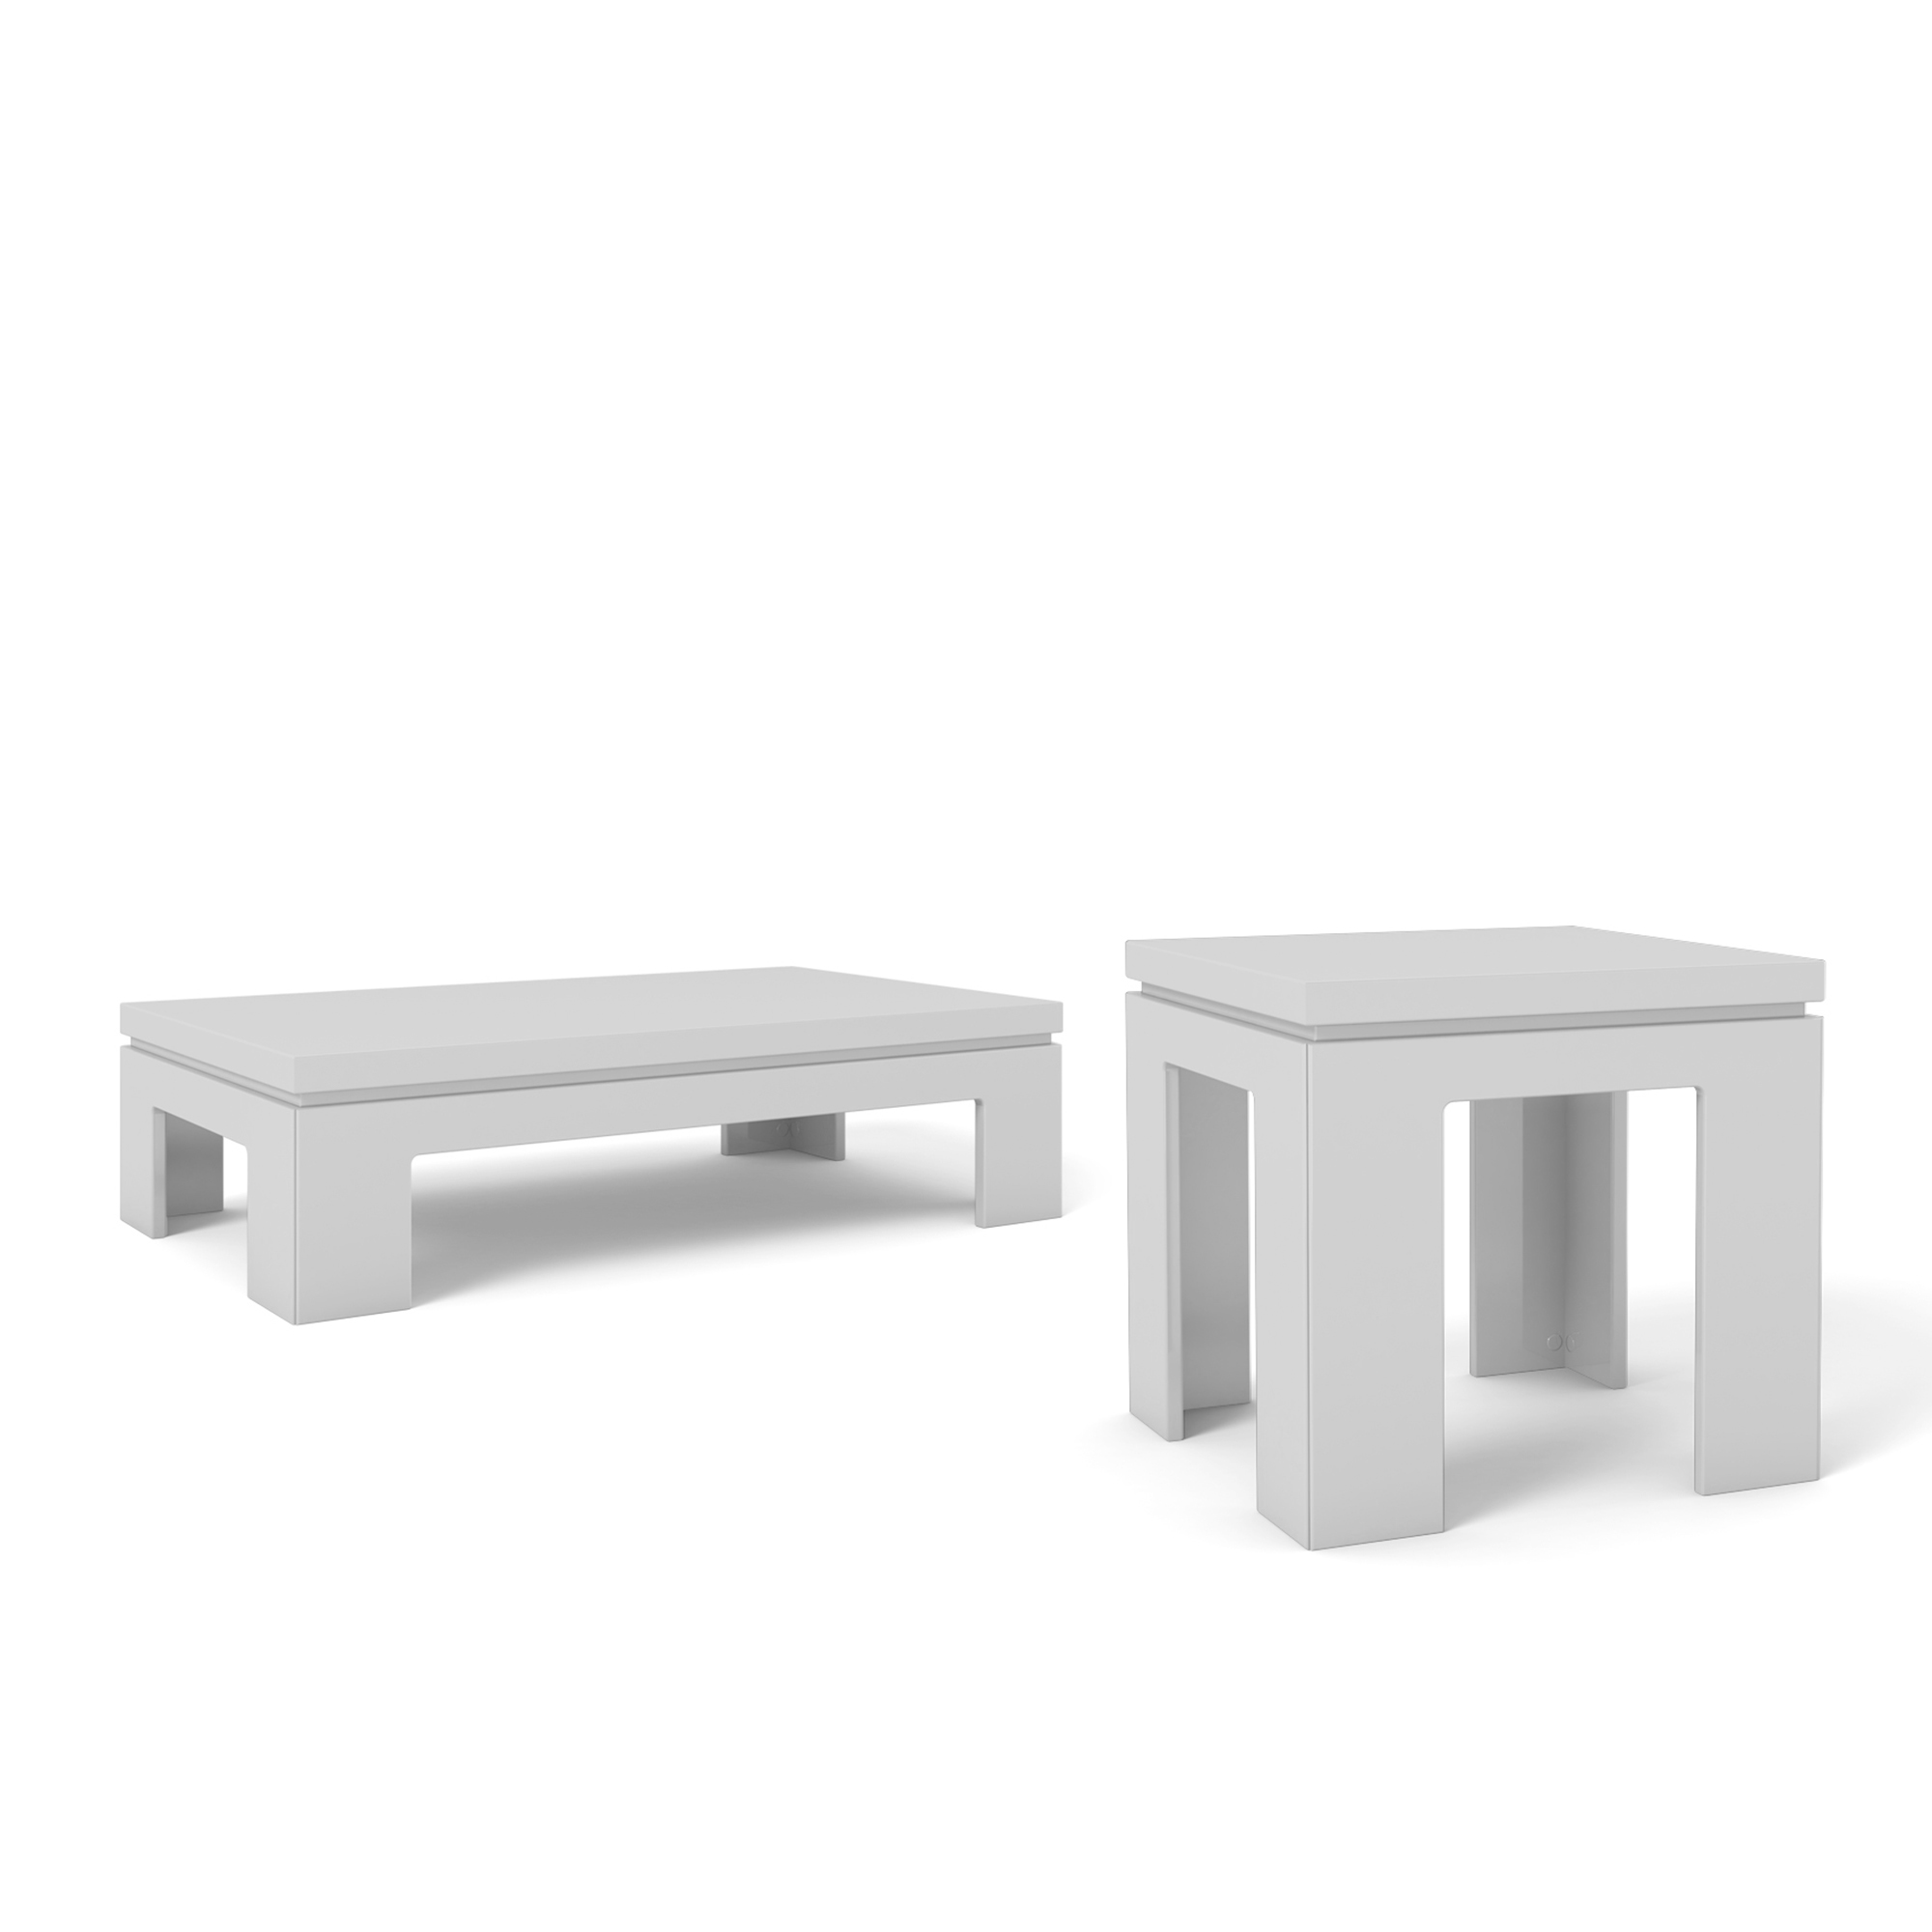 bridge white gloss piece accent table living room set manhattan tables comfort inch deep console leick furniture mission deck coffee with shelves and drawers storage wrought iron